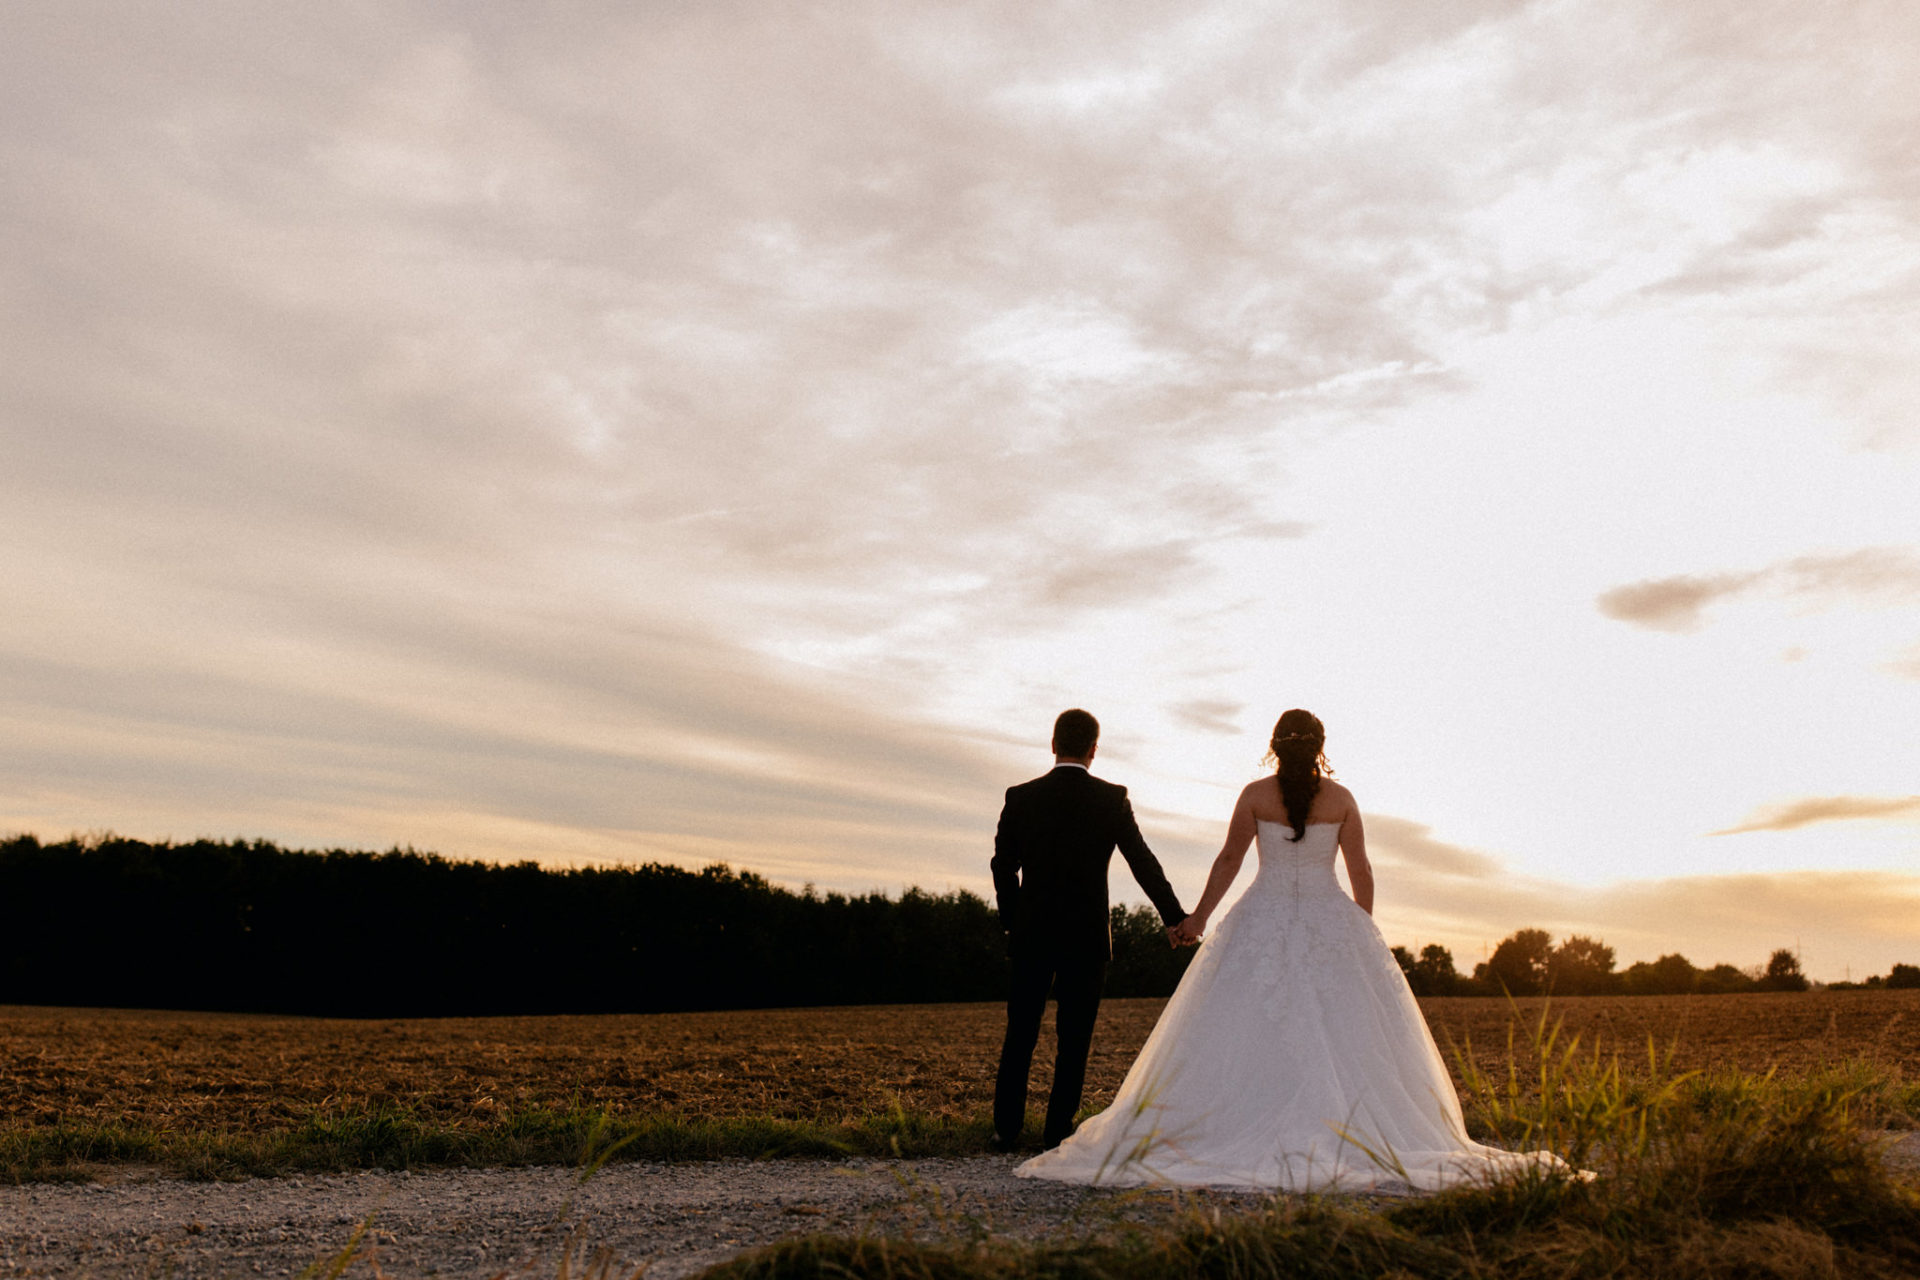 stuttgart wedding photographer-Castle Wedding Germany-Blackforest marriage-schloss heinsheim bride and groom sunset